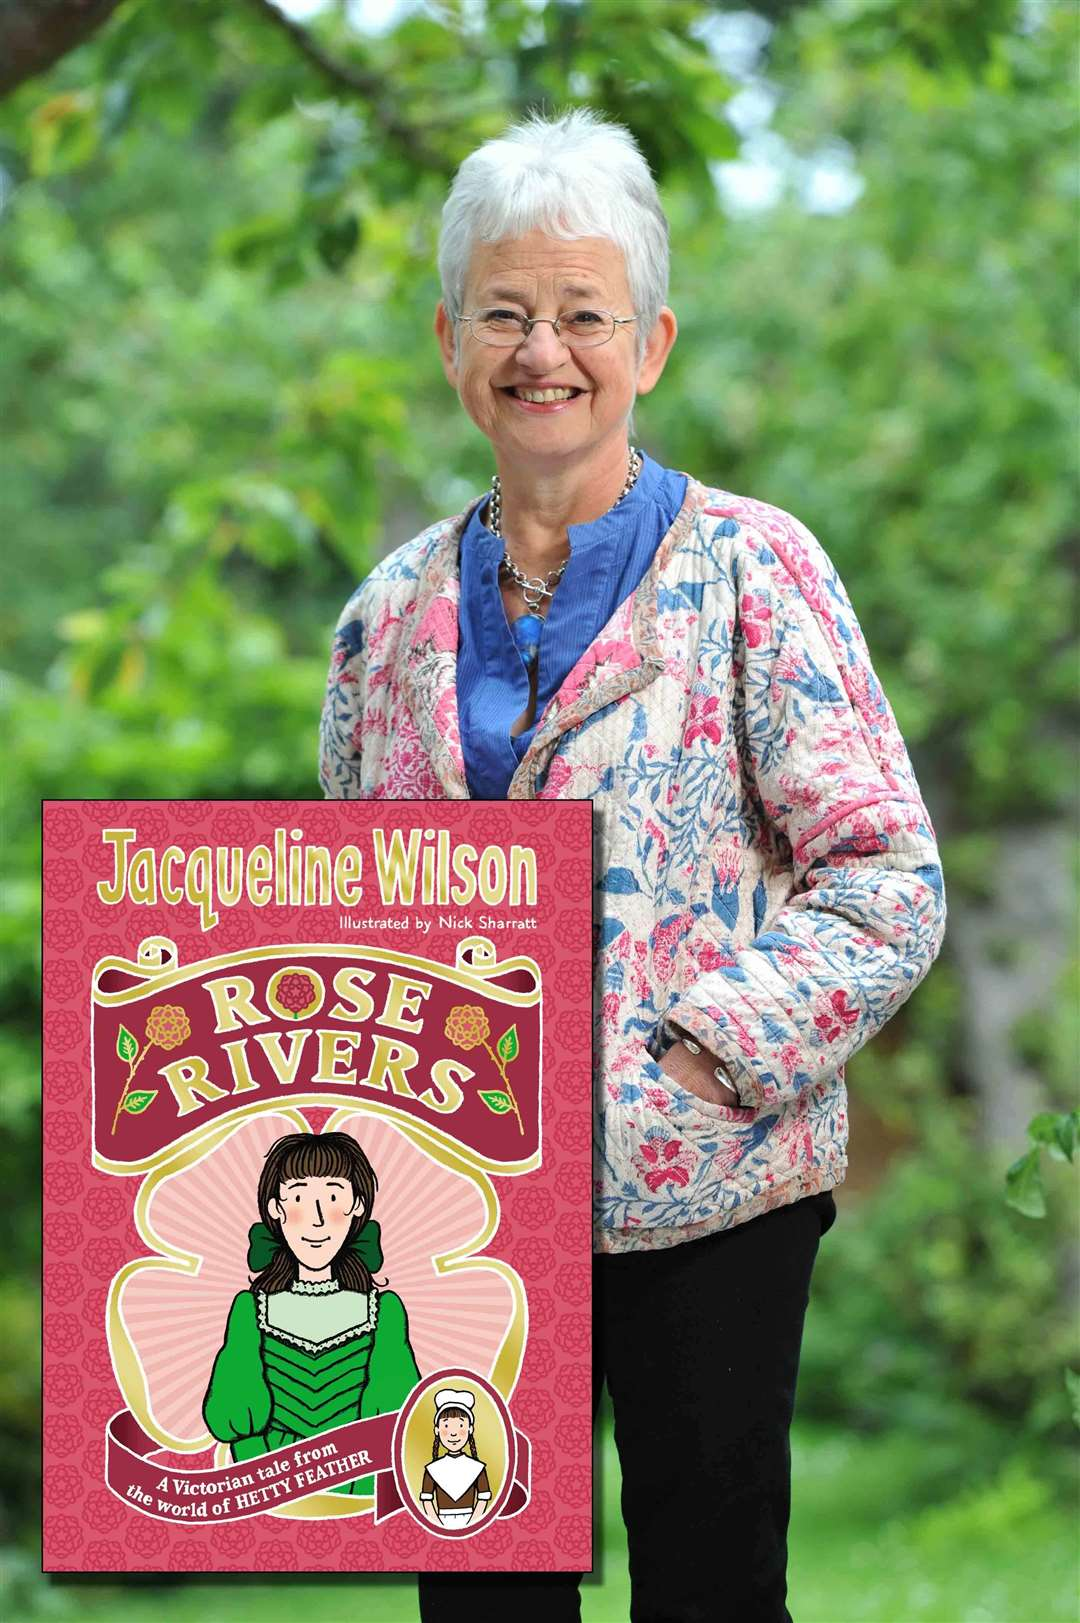 Author Jacqueline Wilson's new book, Rose Rivers